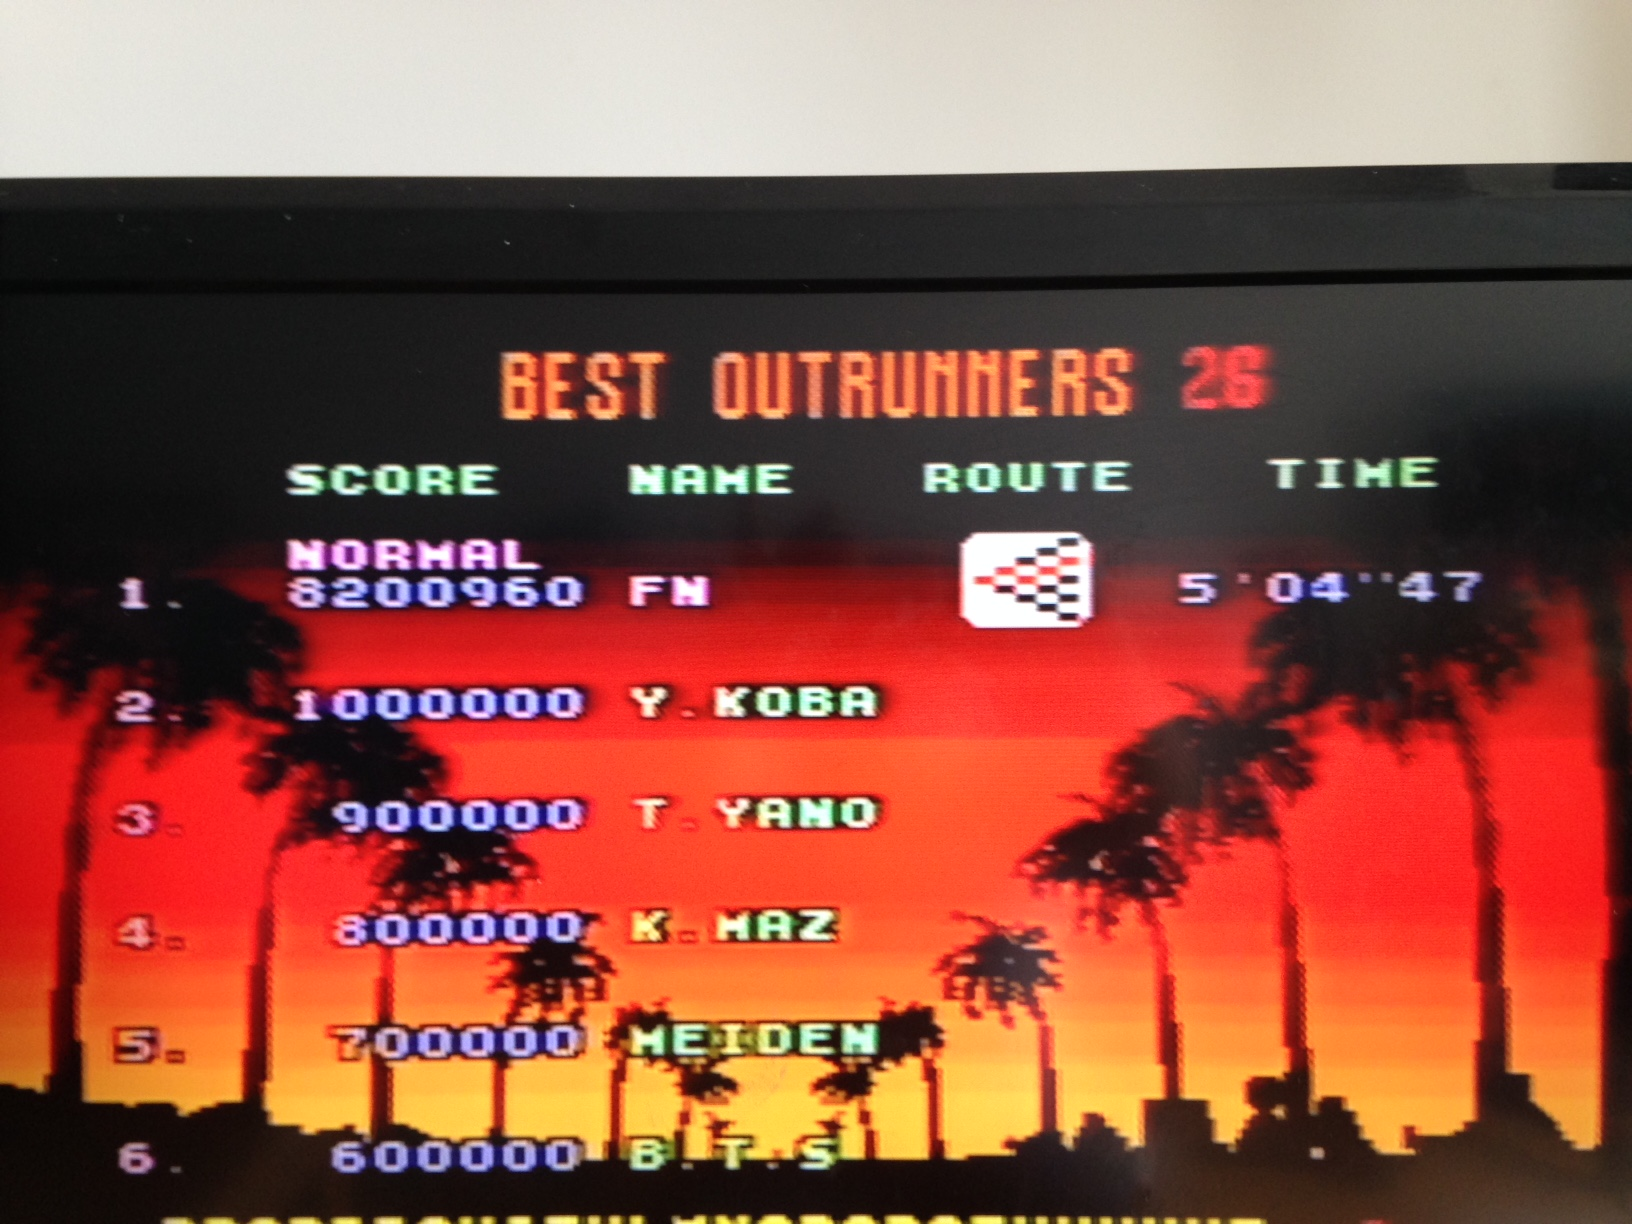 mechafatnick: Outrun: Normal (Sega Genesis / MegaDrive) 8,200,960 points on 2014-09-20 07:11:07